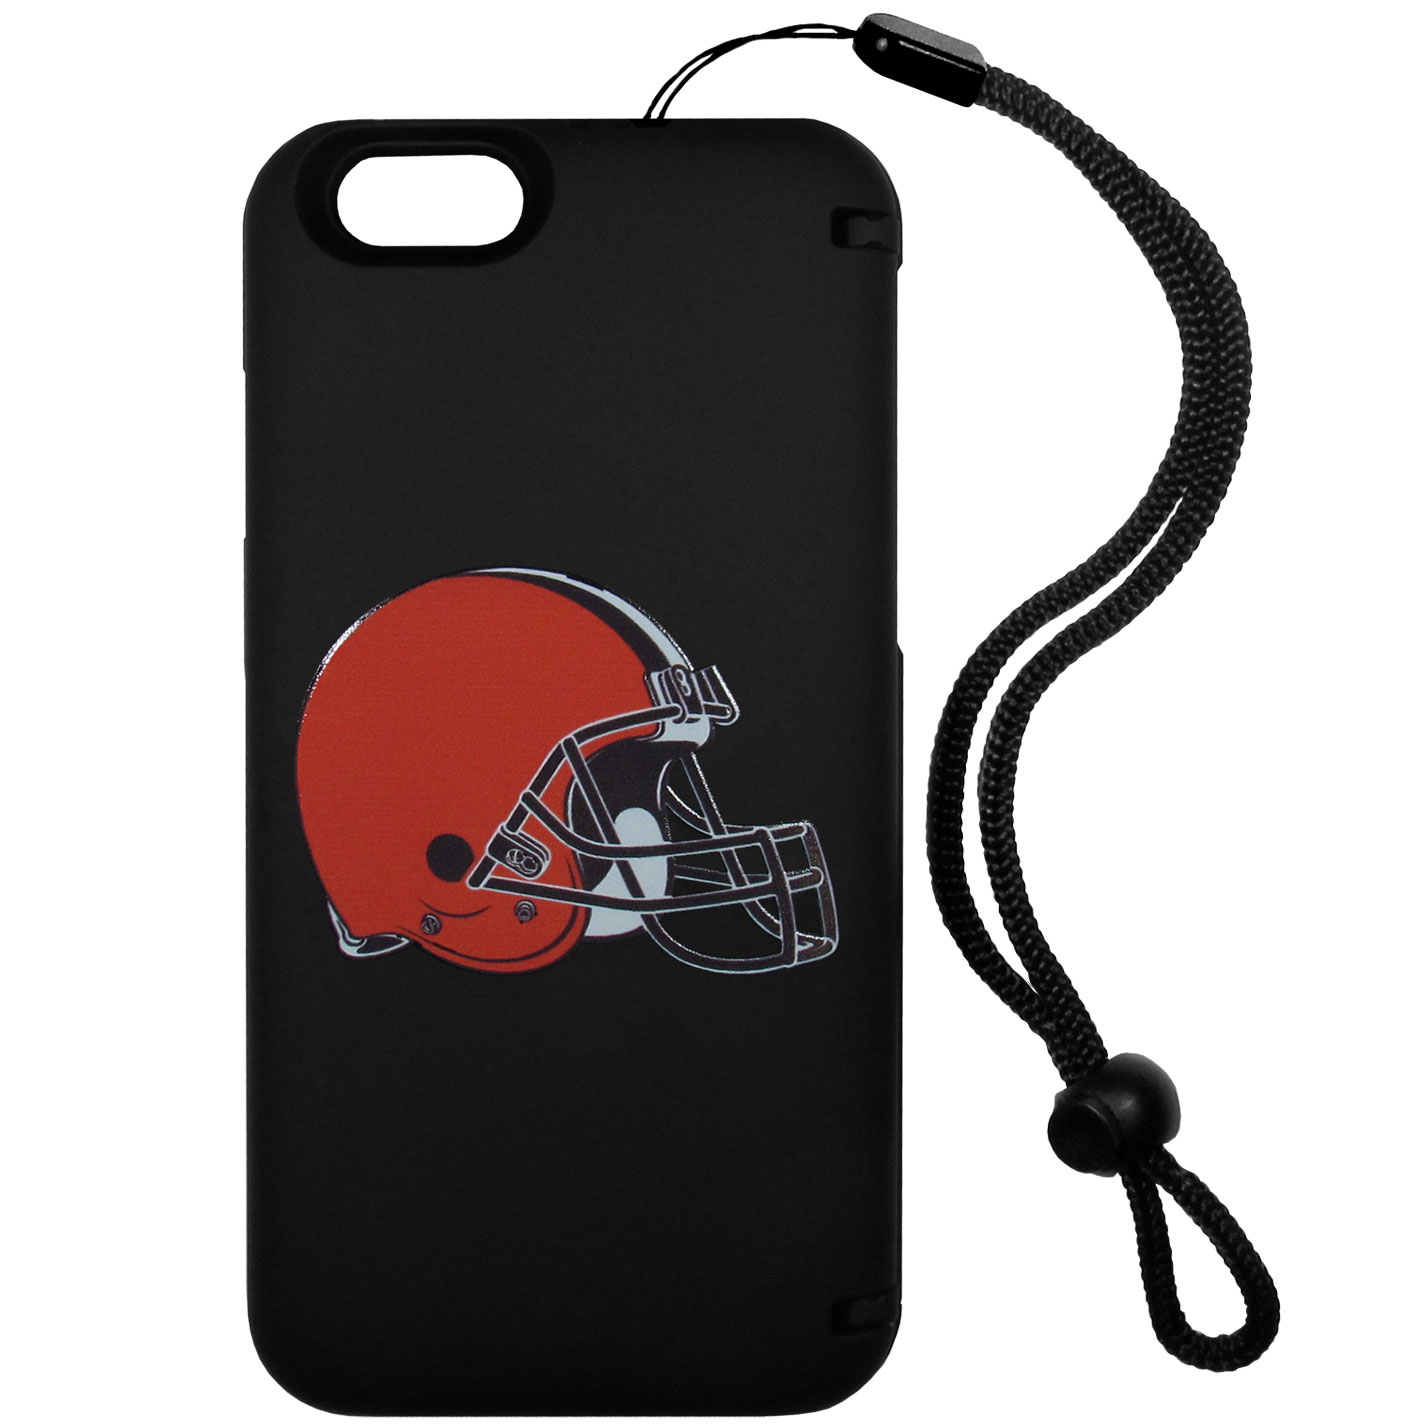 Cleveland Browns iPhone 6 Everything Case - This case really does have everything but the kitchen sink! The hidden compartment lets you keep your cards, money and tickets to the big game safe and secure and has a compact mirror so you can make sure your game face is ready to go. It also comes with a kickstand to make chatting and watching videos a breeze. The wrist strap allows you to travel with ease with your everything case. If that's not enough, it also comes with the Cleveland Browns logo printed in expert detail on the front.